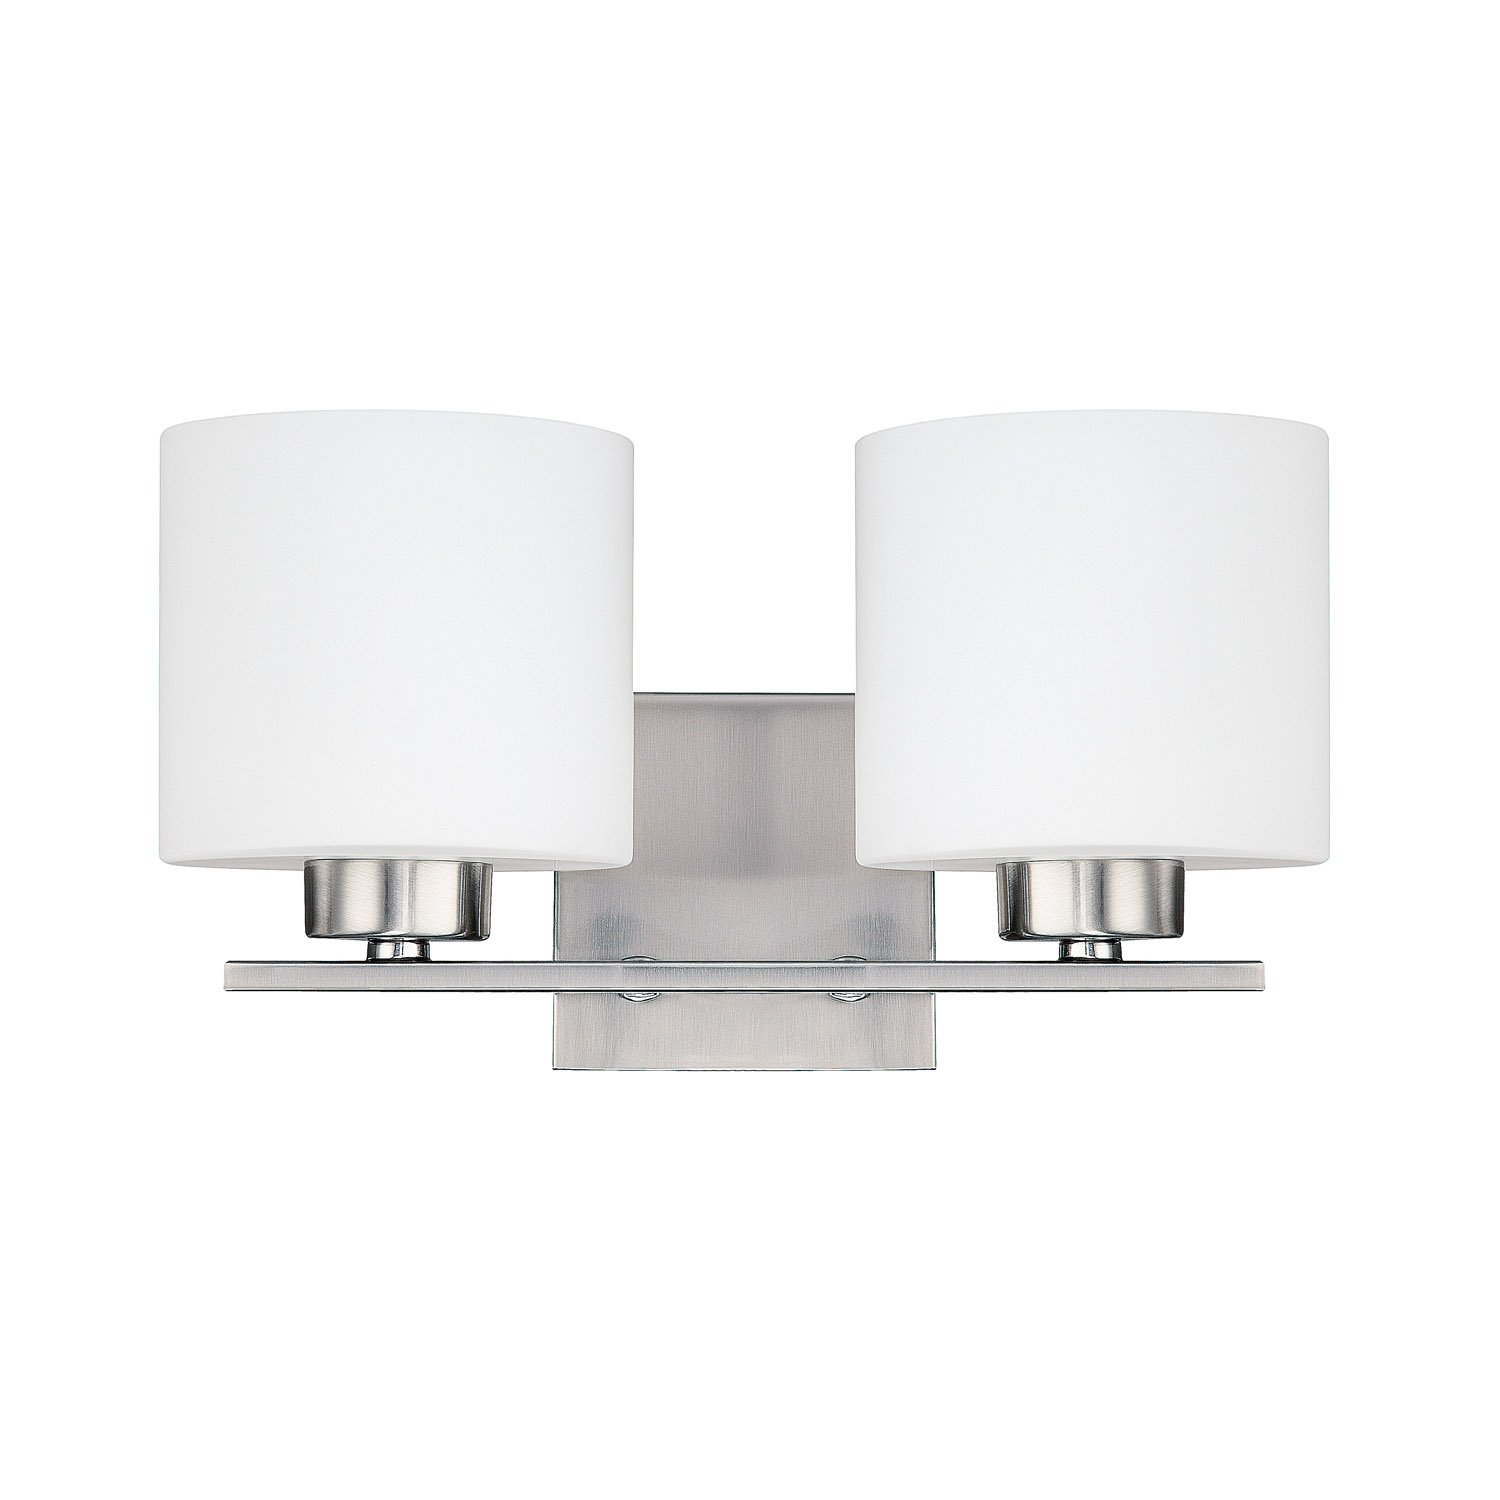 Capital Lighting BN Steel Light Vanity Fixture Brushed - 2 light bathroom vanity fixture